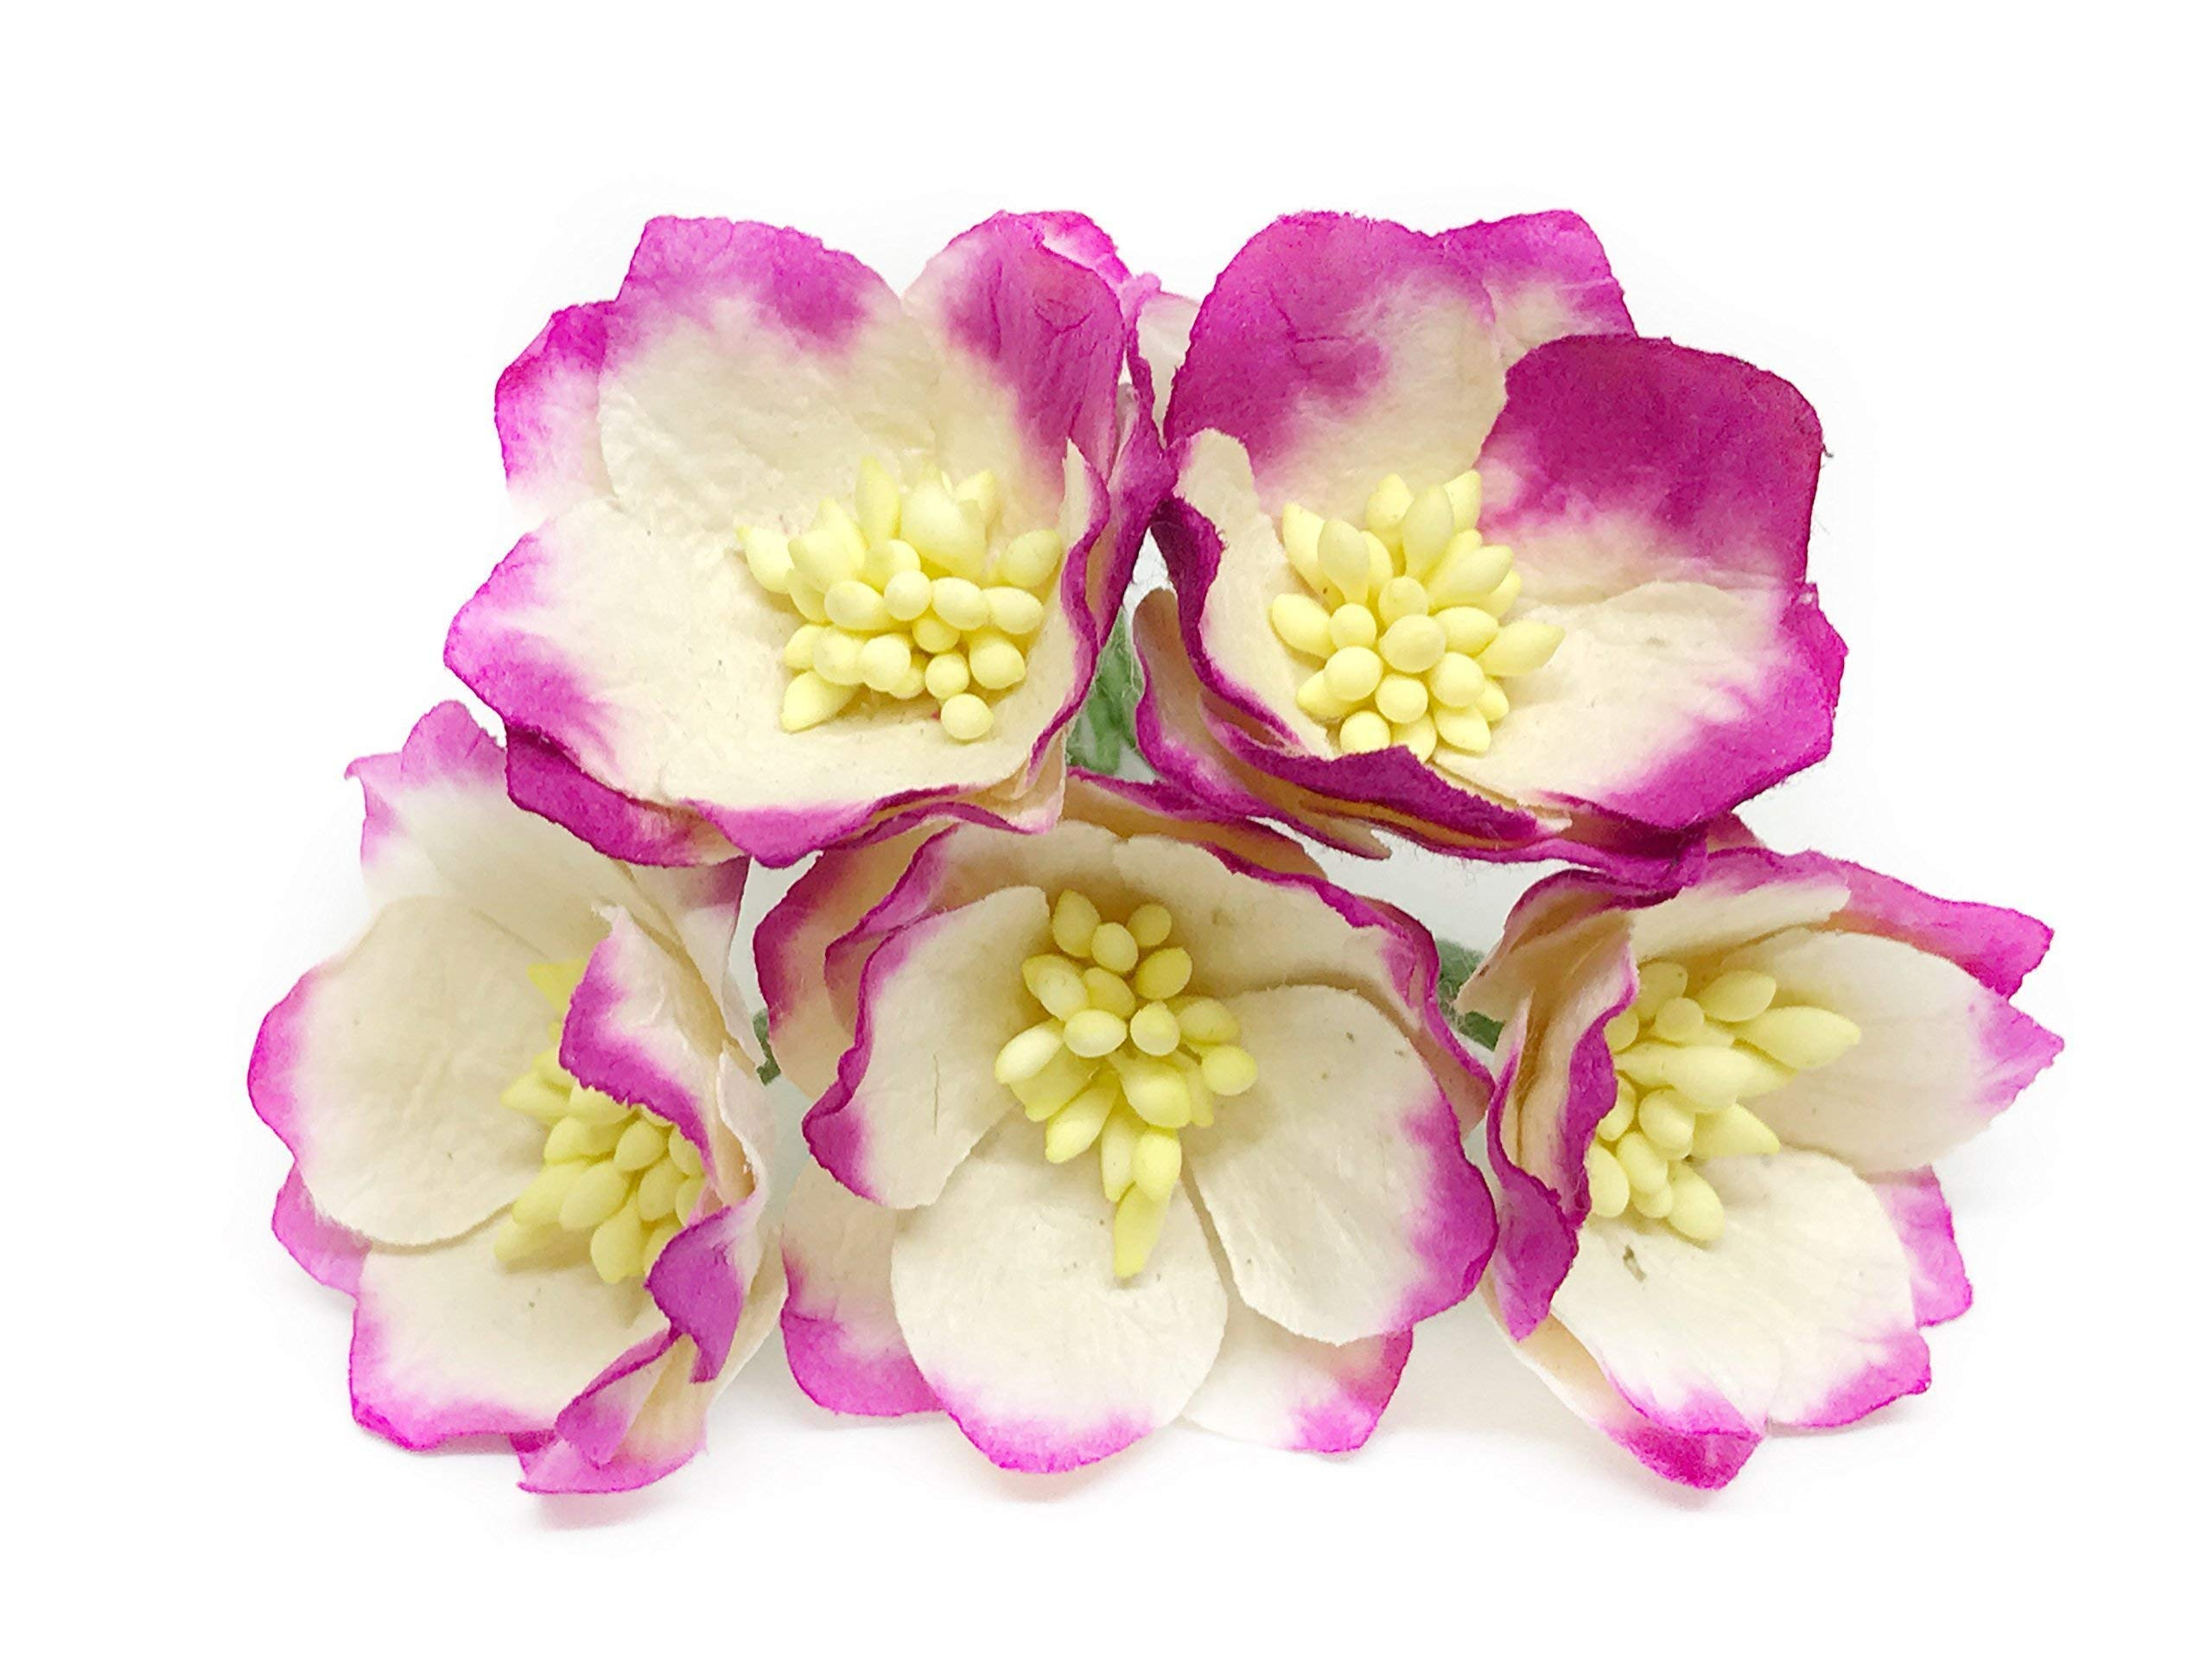 15-Cherry-Blossom-Flower-Artificial-Flowers-Paper-Flowers-Synthetic-Flowers-Fake-Flowers-Paper-Craft-Flowers-Mulberry-Paper-Flowers-Wedding-12-Pieces